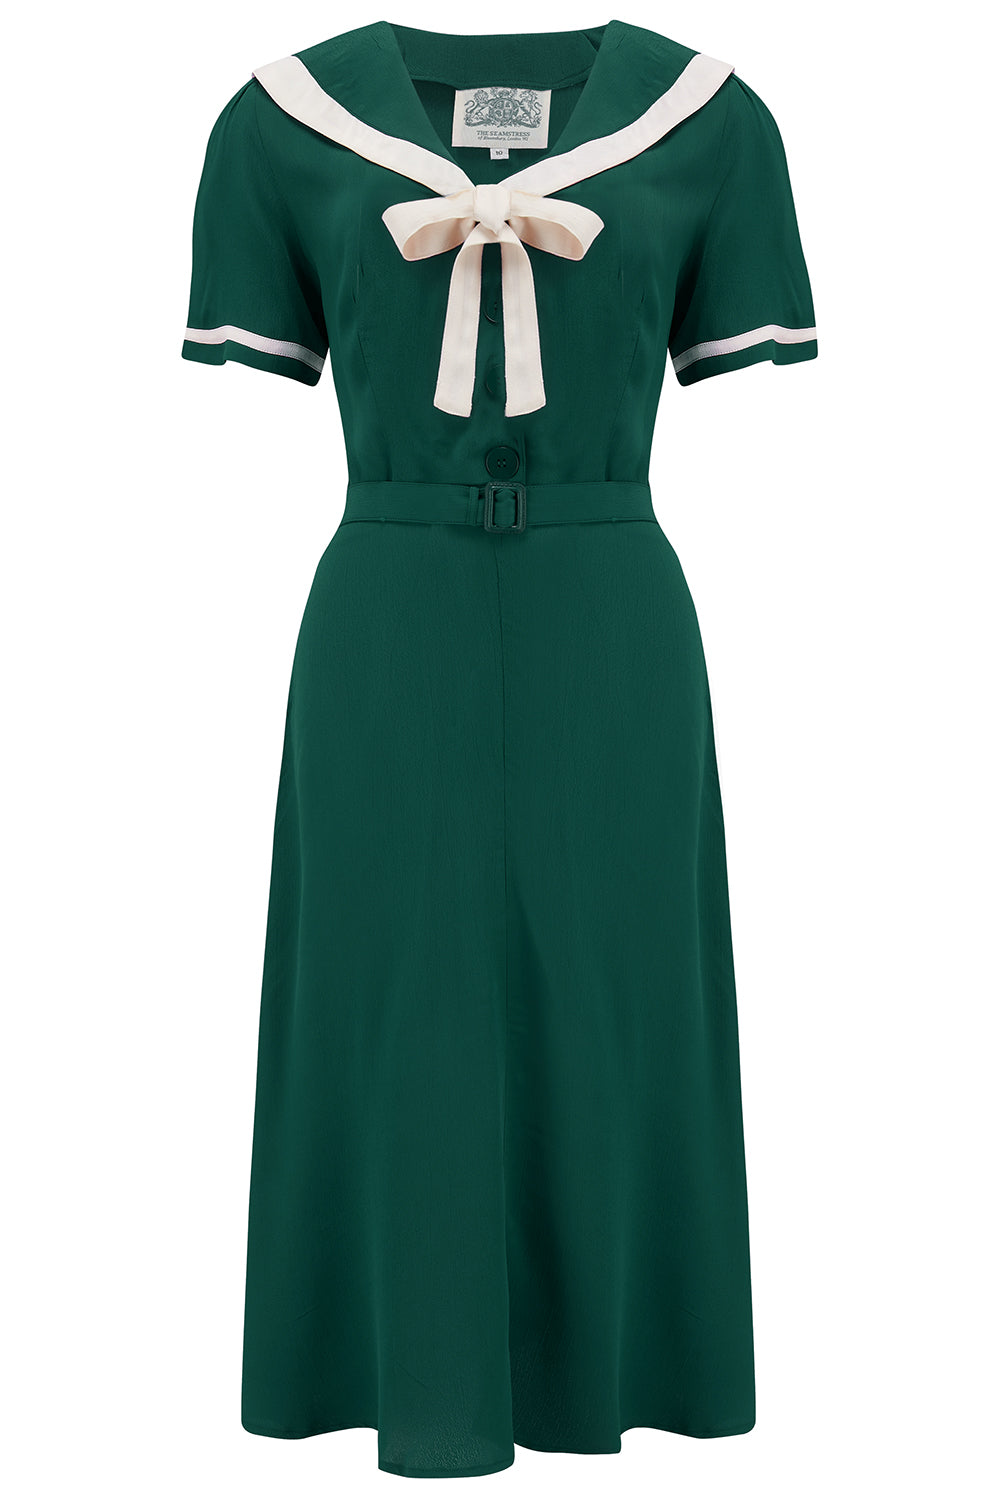 Patti Dress In 1940s Solid Green With Contrast Collar, Authentic true vintage style - RocknRomance True 1940s & 1950s Vintage Style